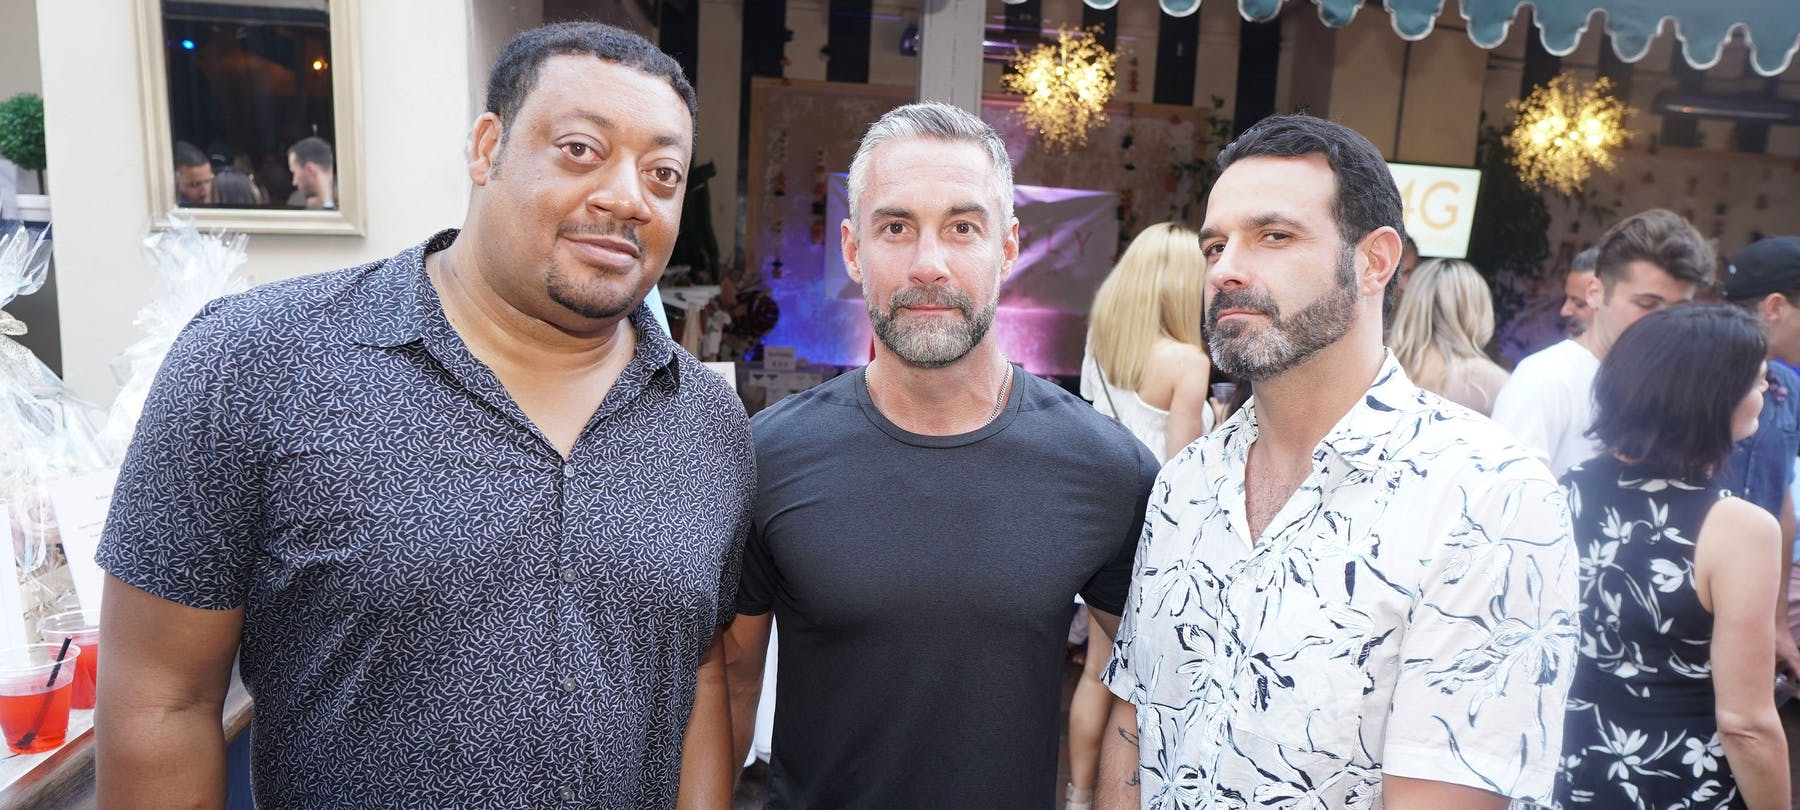 Cedric Yarbrough, Jay Harrington, Rob Evors posing for the camera